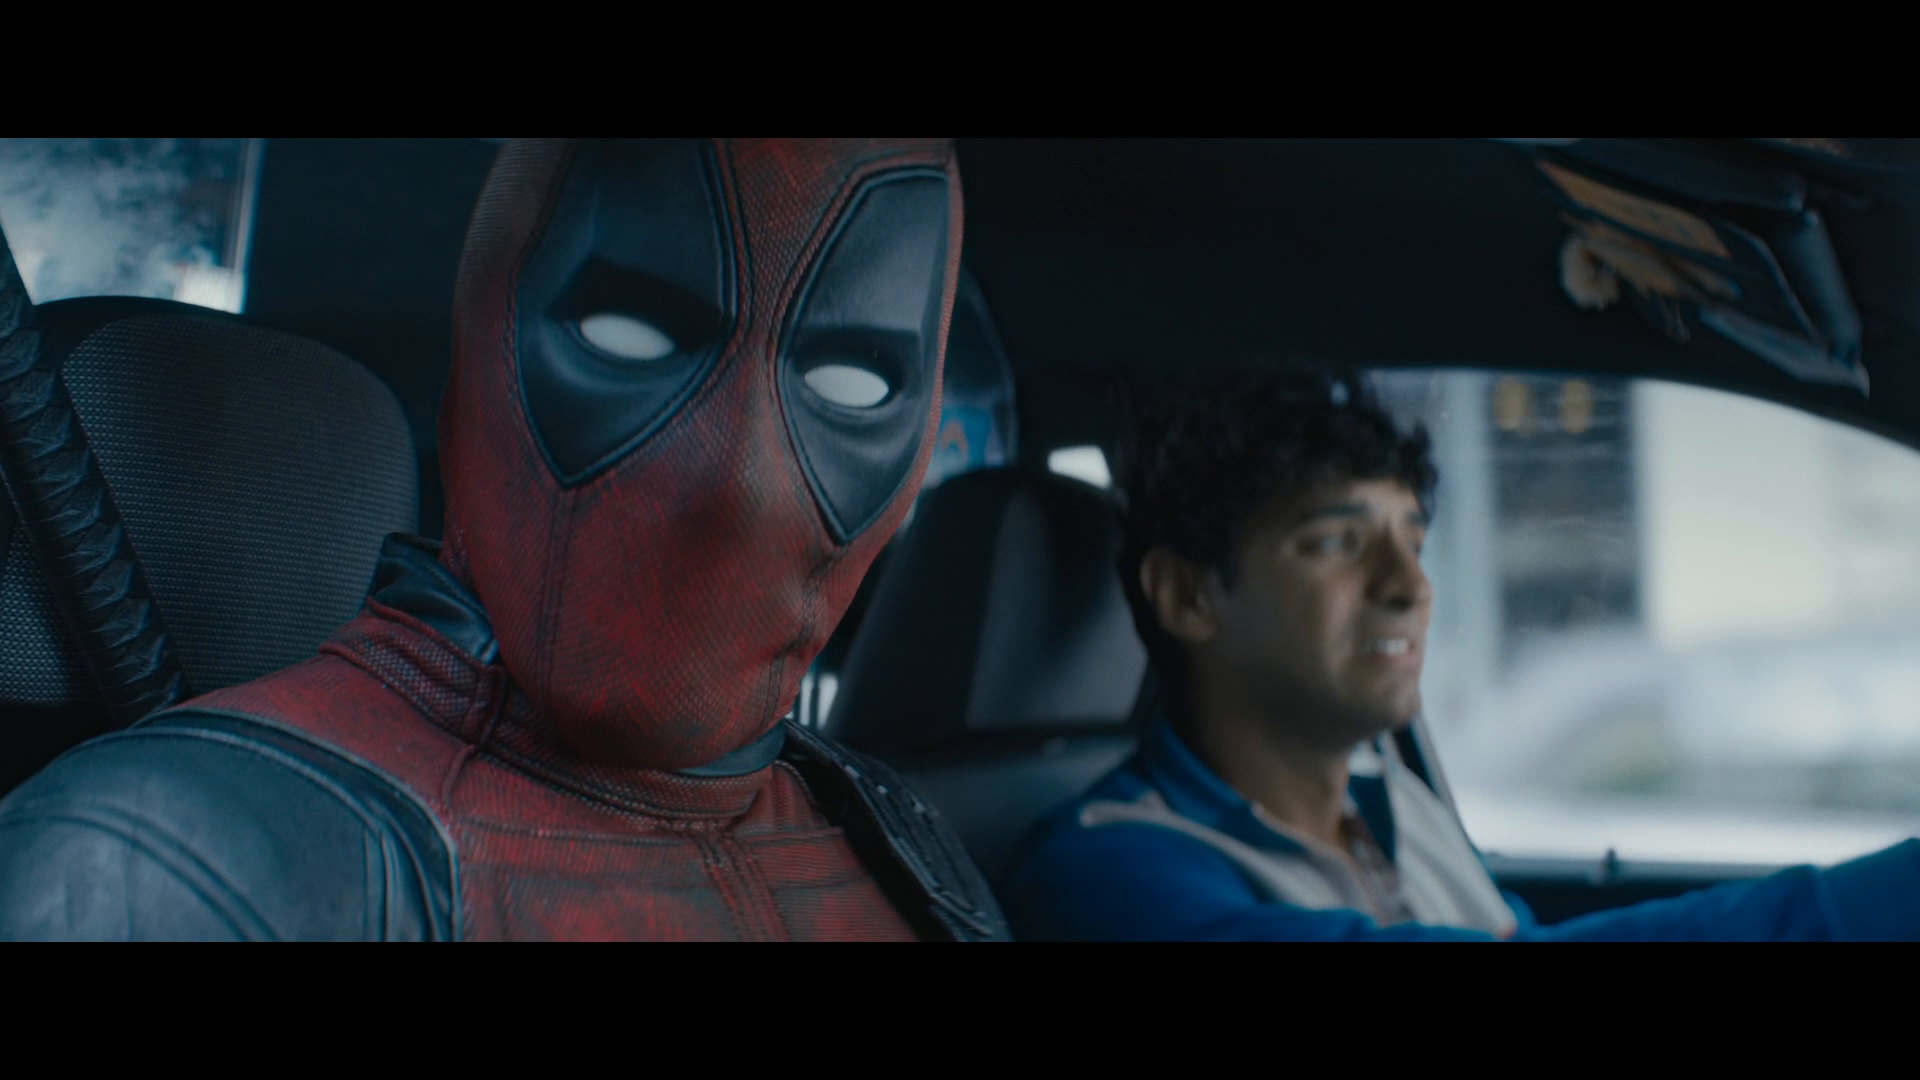 Deadpool 2 (2018) Super Duper Cut UNRATED 1080p AMZN WEBRip DDP5.1 x264-ION10